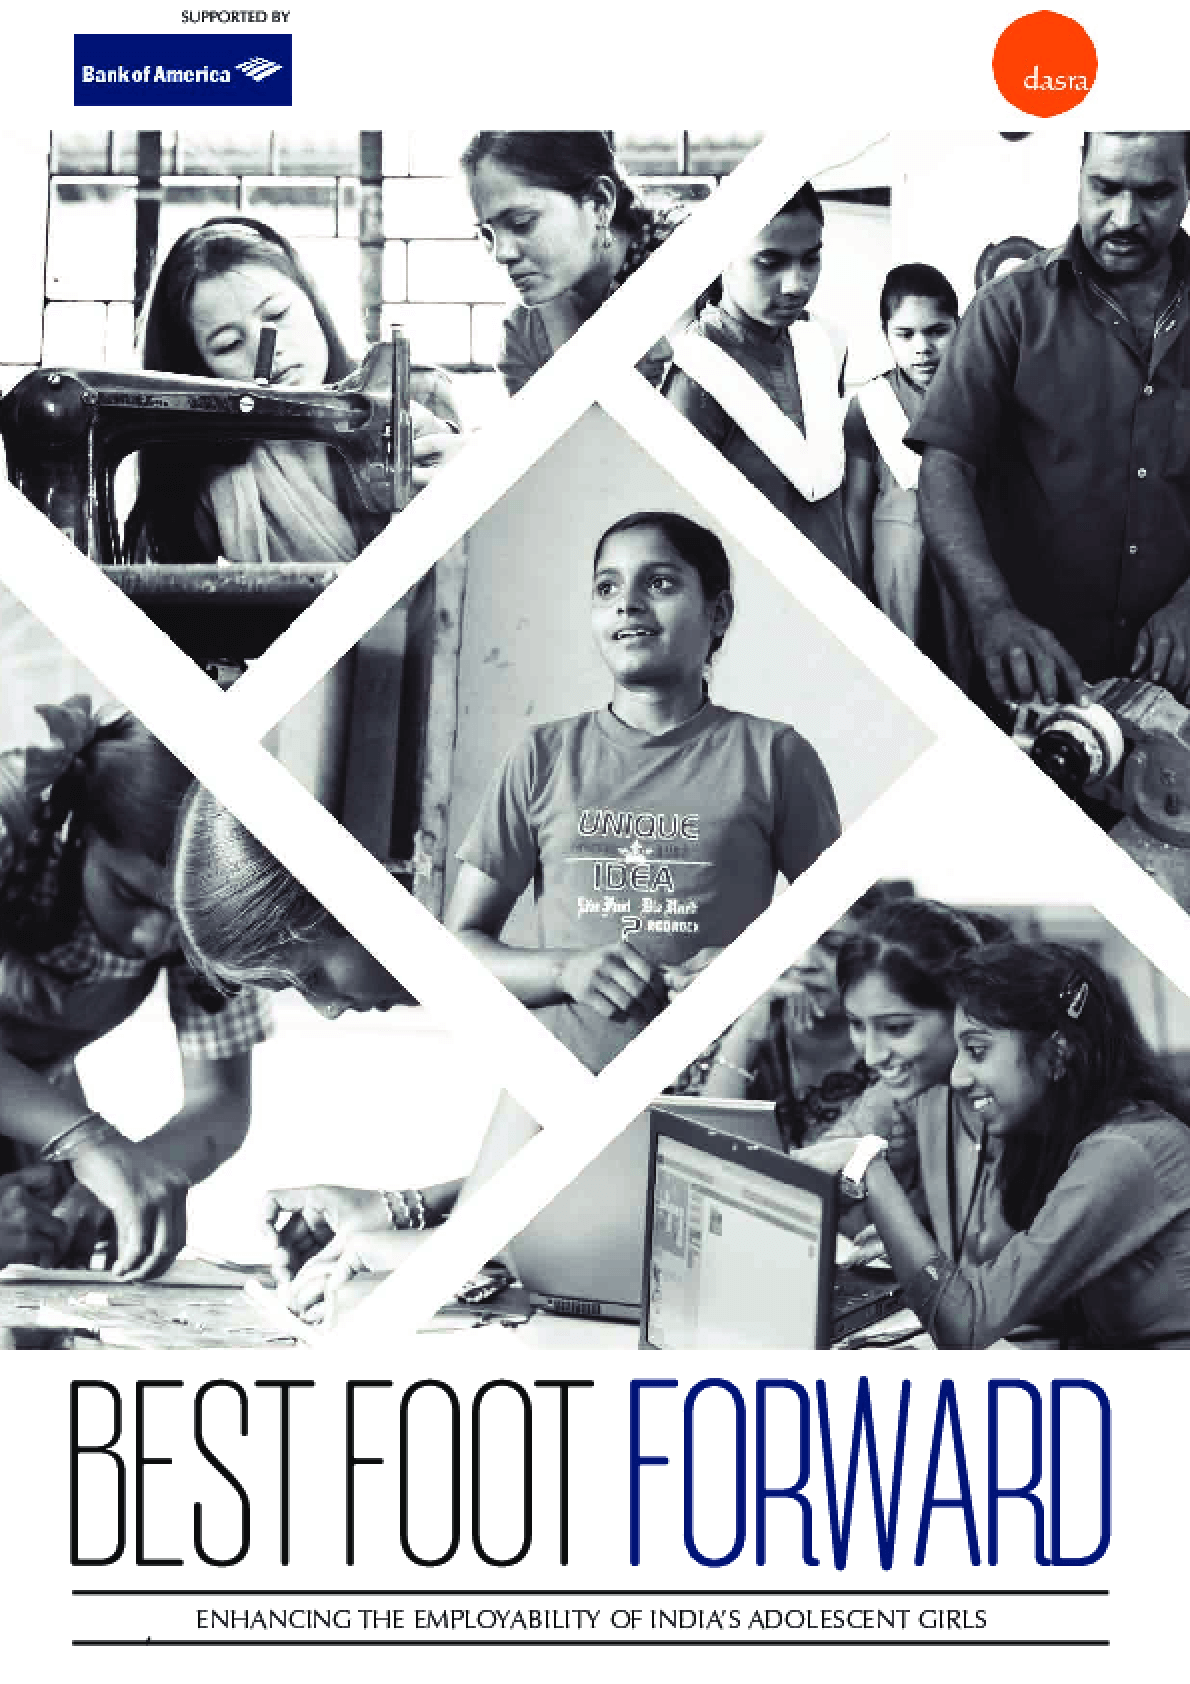 Best Foot Forward: Enhancing the employability of India's adolescent girls